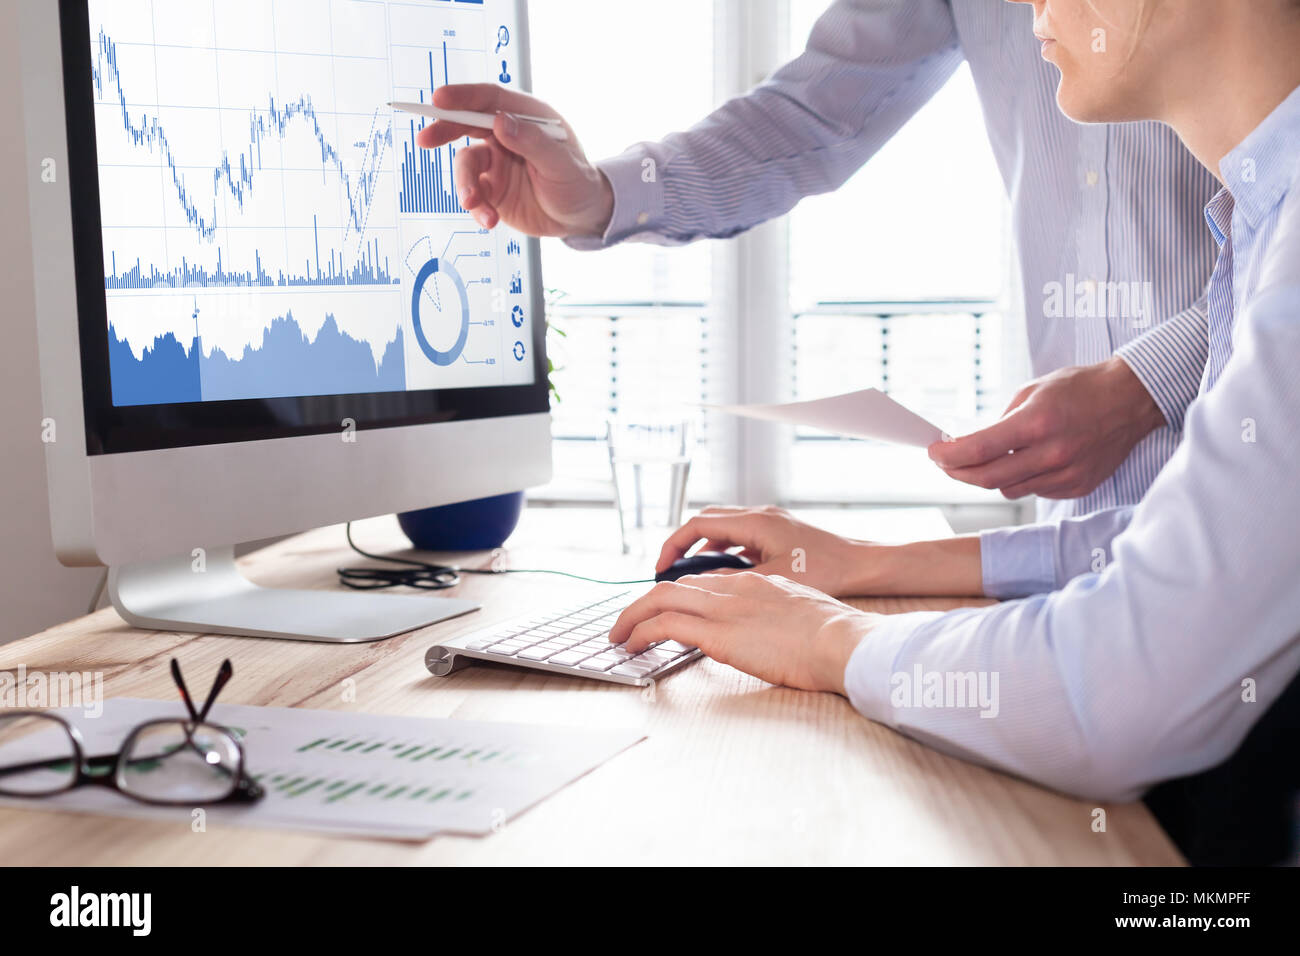 Traders discussing trading strategy for better profit and return on investment (ROI) by analyzing stock market and foreign exchange (forex) charts on  - Stock Image